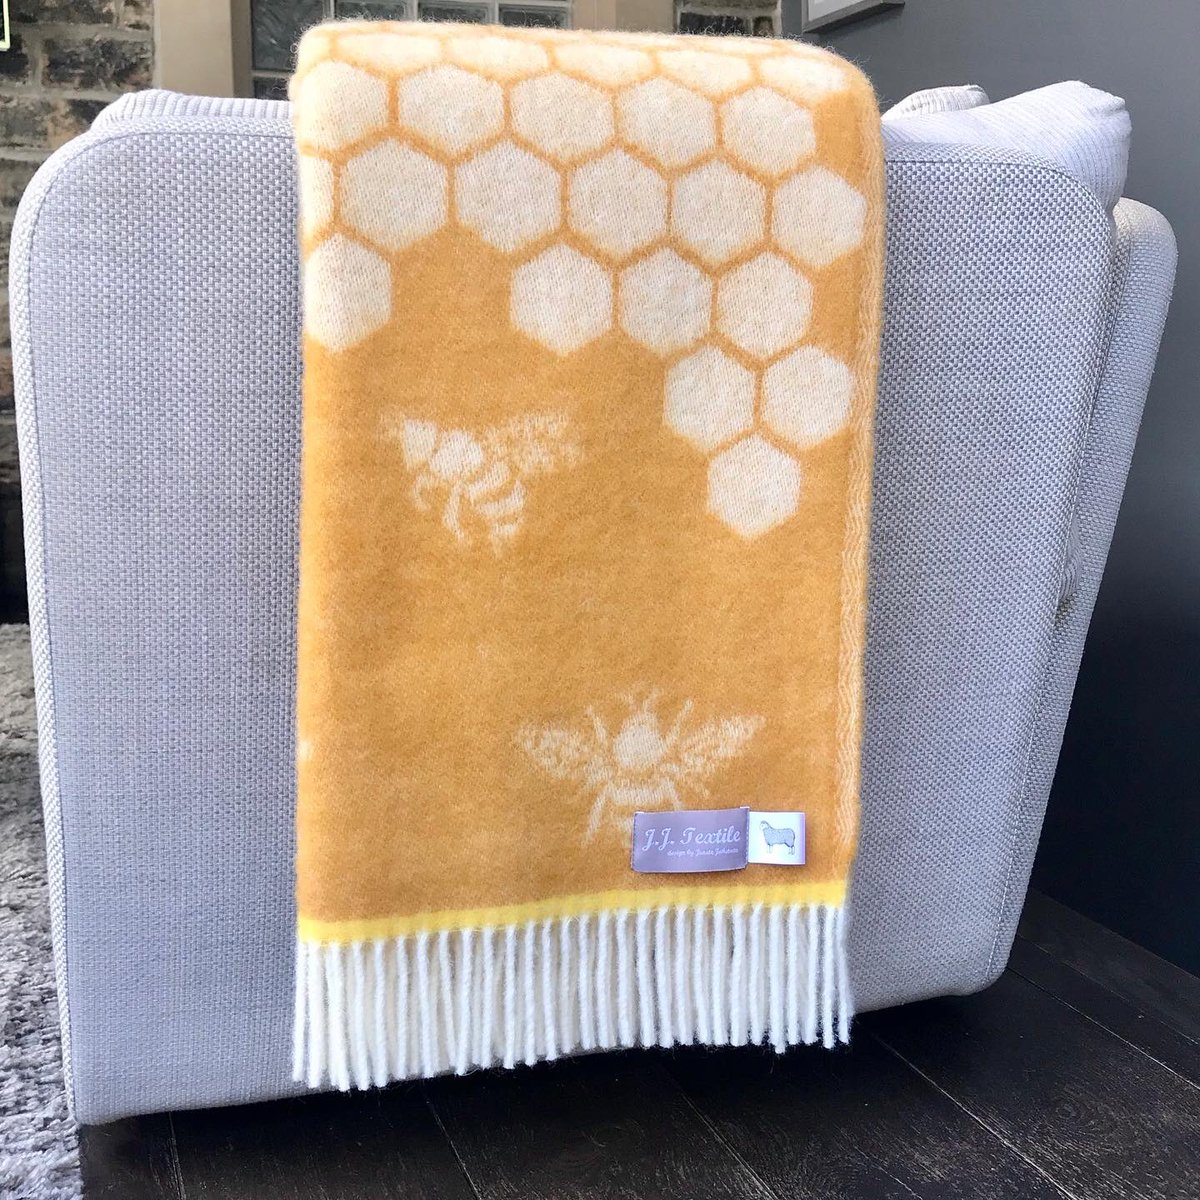 All about the bees 🐝just had to add this beautiful bee blanket to our collection & it's gone down a treat. Autumn is upon us & we may be spending more time outside this year so why not wrap up warm. Looks fab on a sofa, bed or chair too 100% wool on website or @ThePieceHall